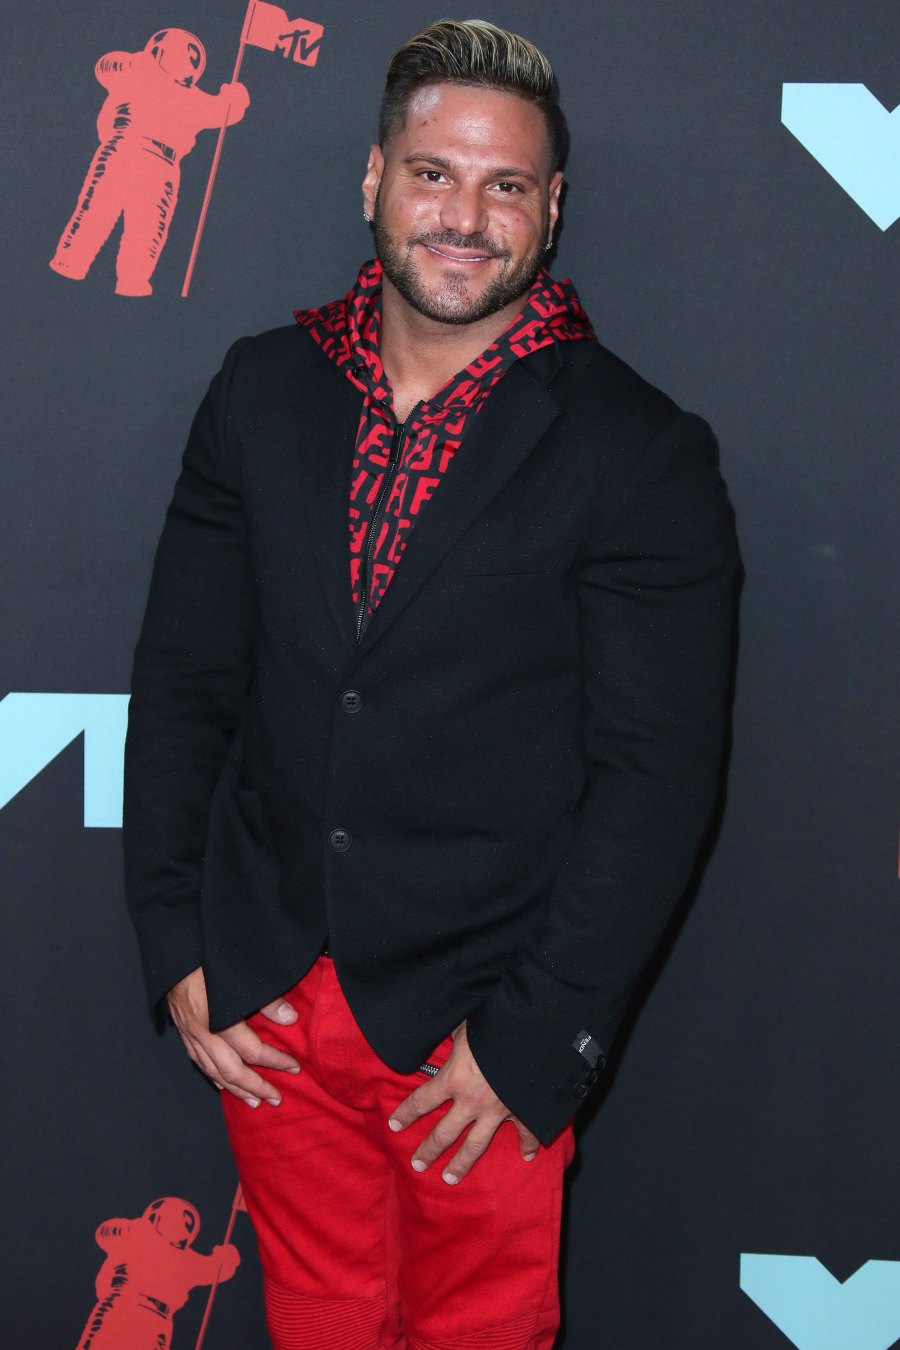 Ronnie Ortiz-Magro Released From Jail Red Pants Black Jacket